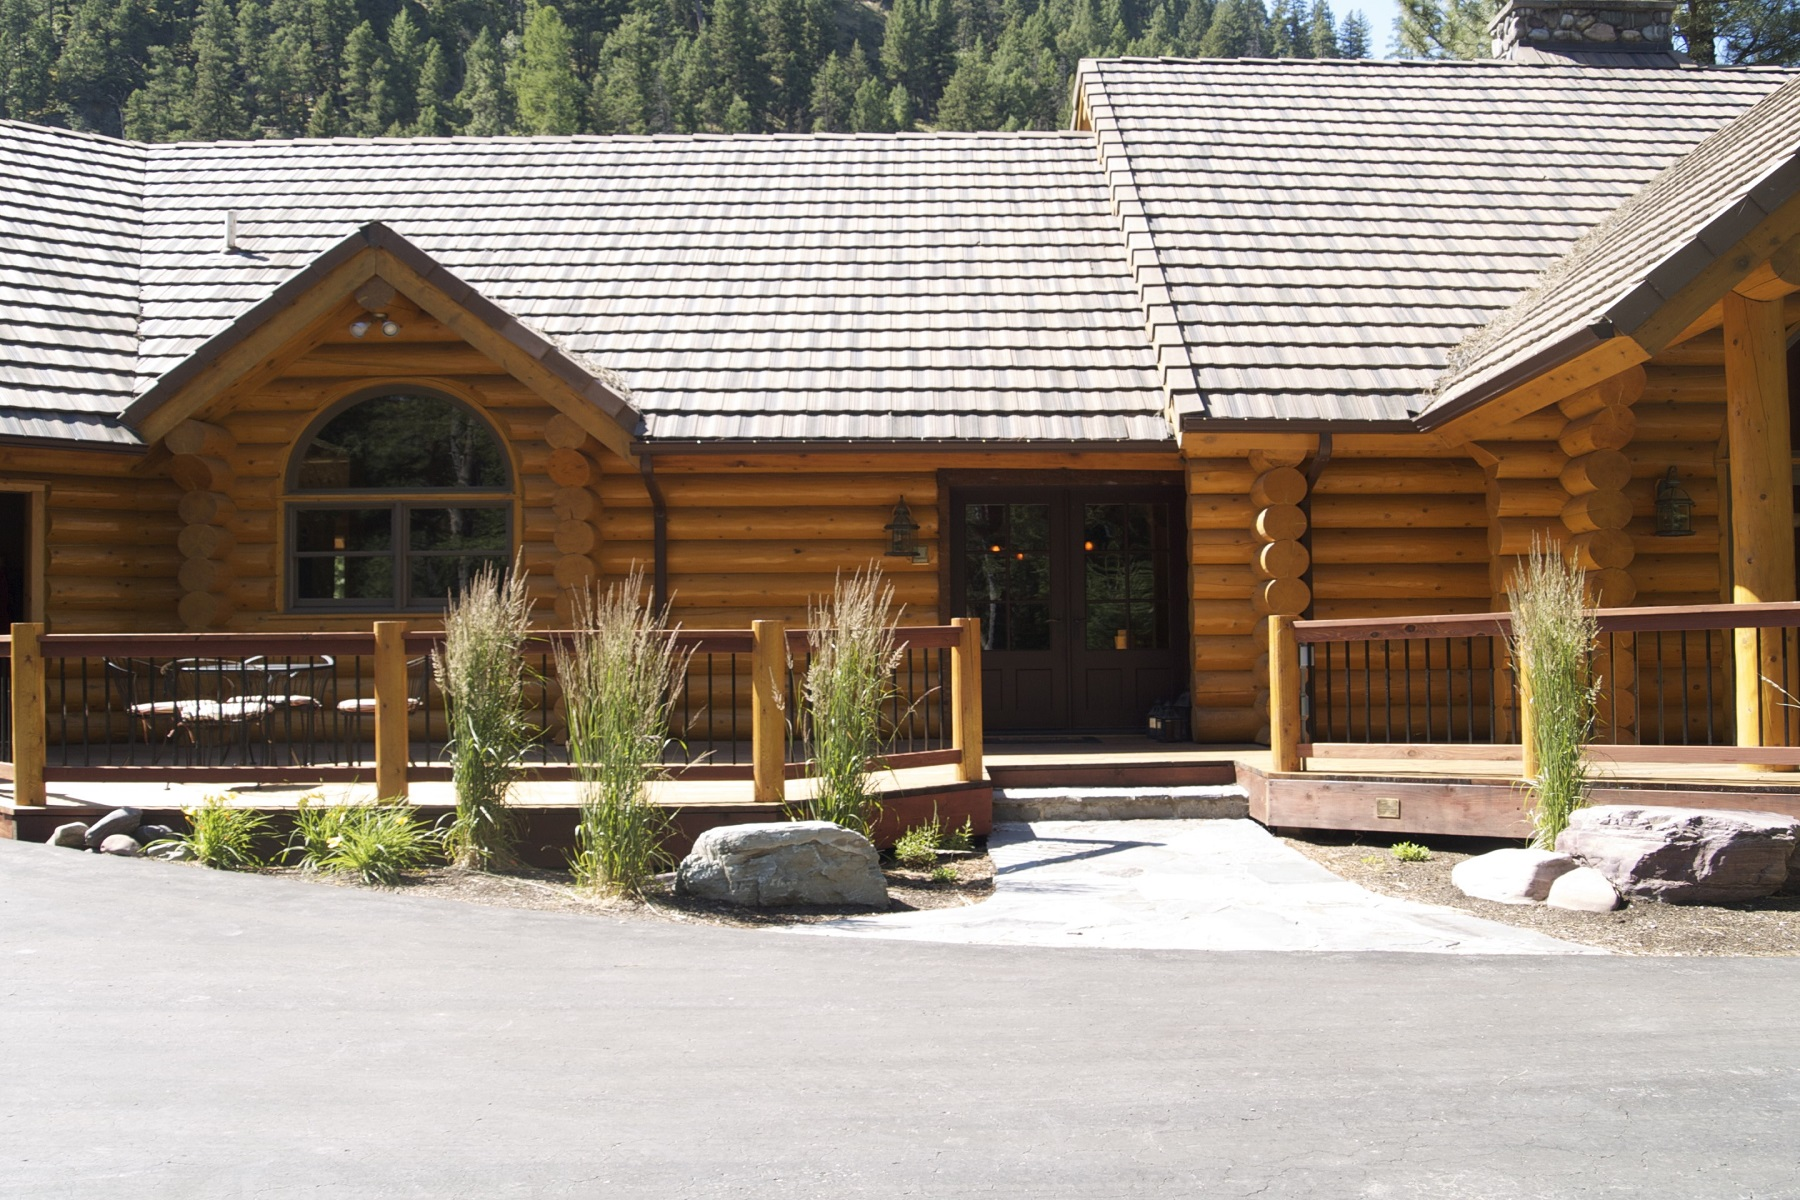 Single Family Home for Sale at Blackfoot River Lodge 18465 Hwy 200 E Bonner, Montana, 59823 United States